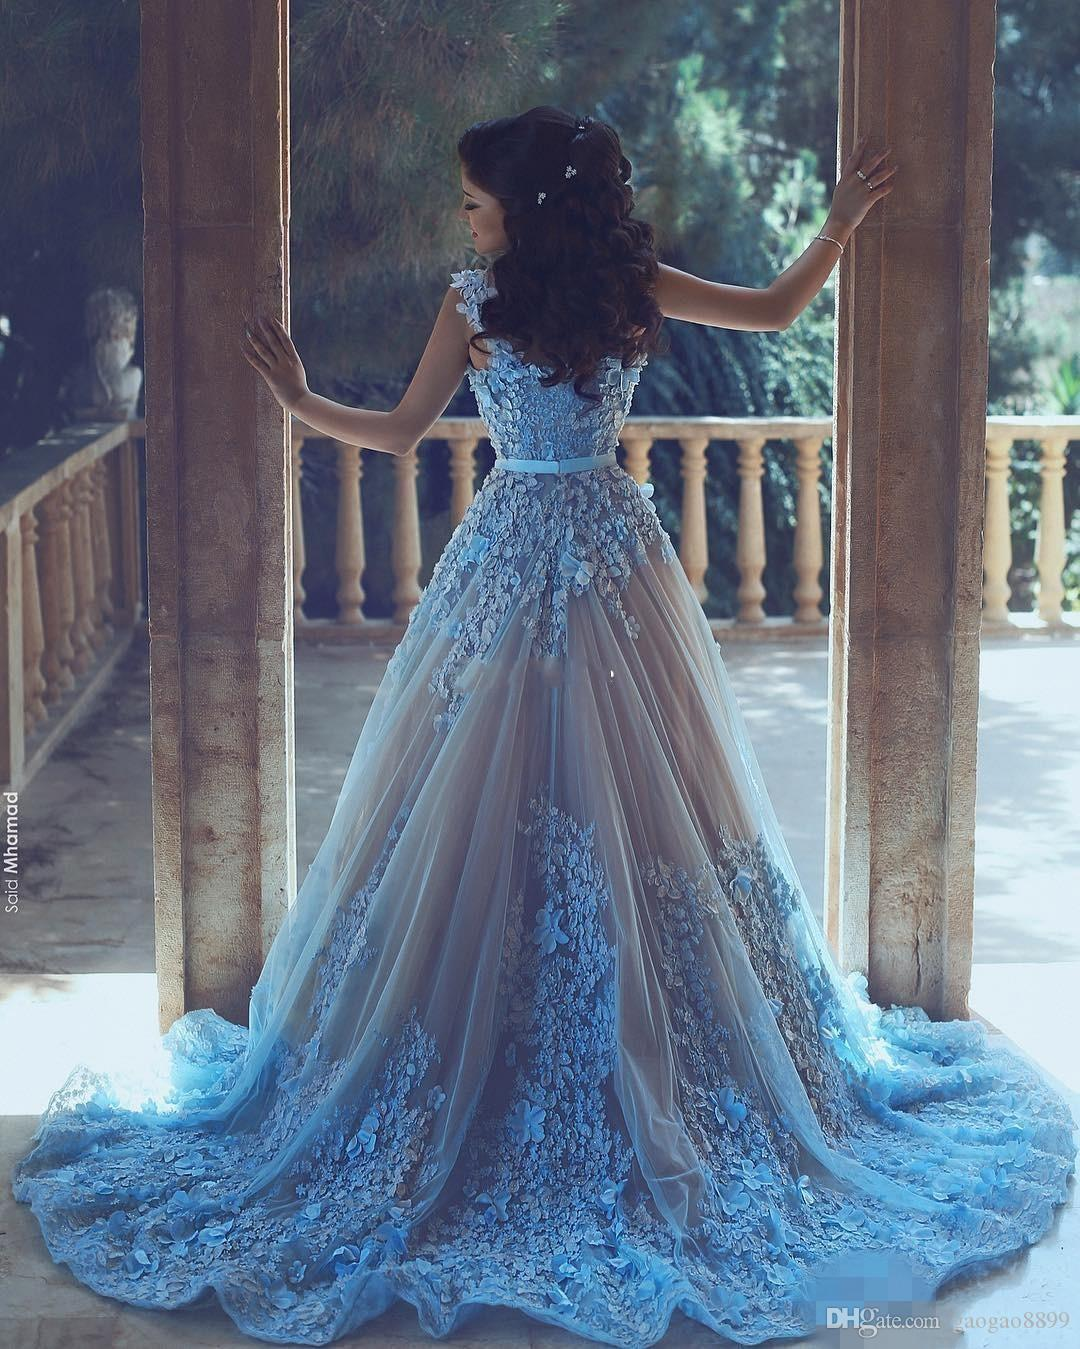 Arabic Women Formal Evening Dresses wit 3D Floral Appliques Tulle A Line Lace Bead Applique Prom Dress 2019 Dresses Party Wear Plus Size